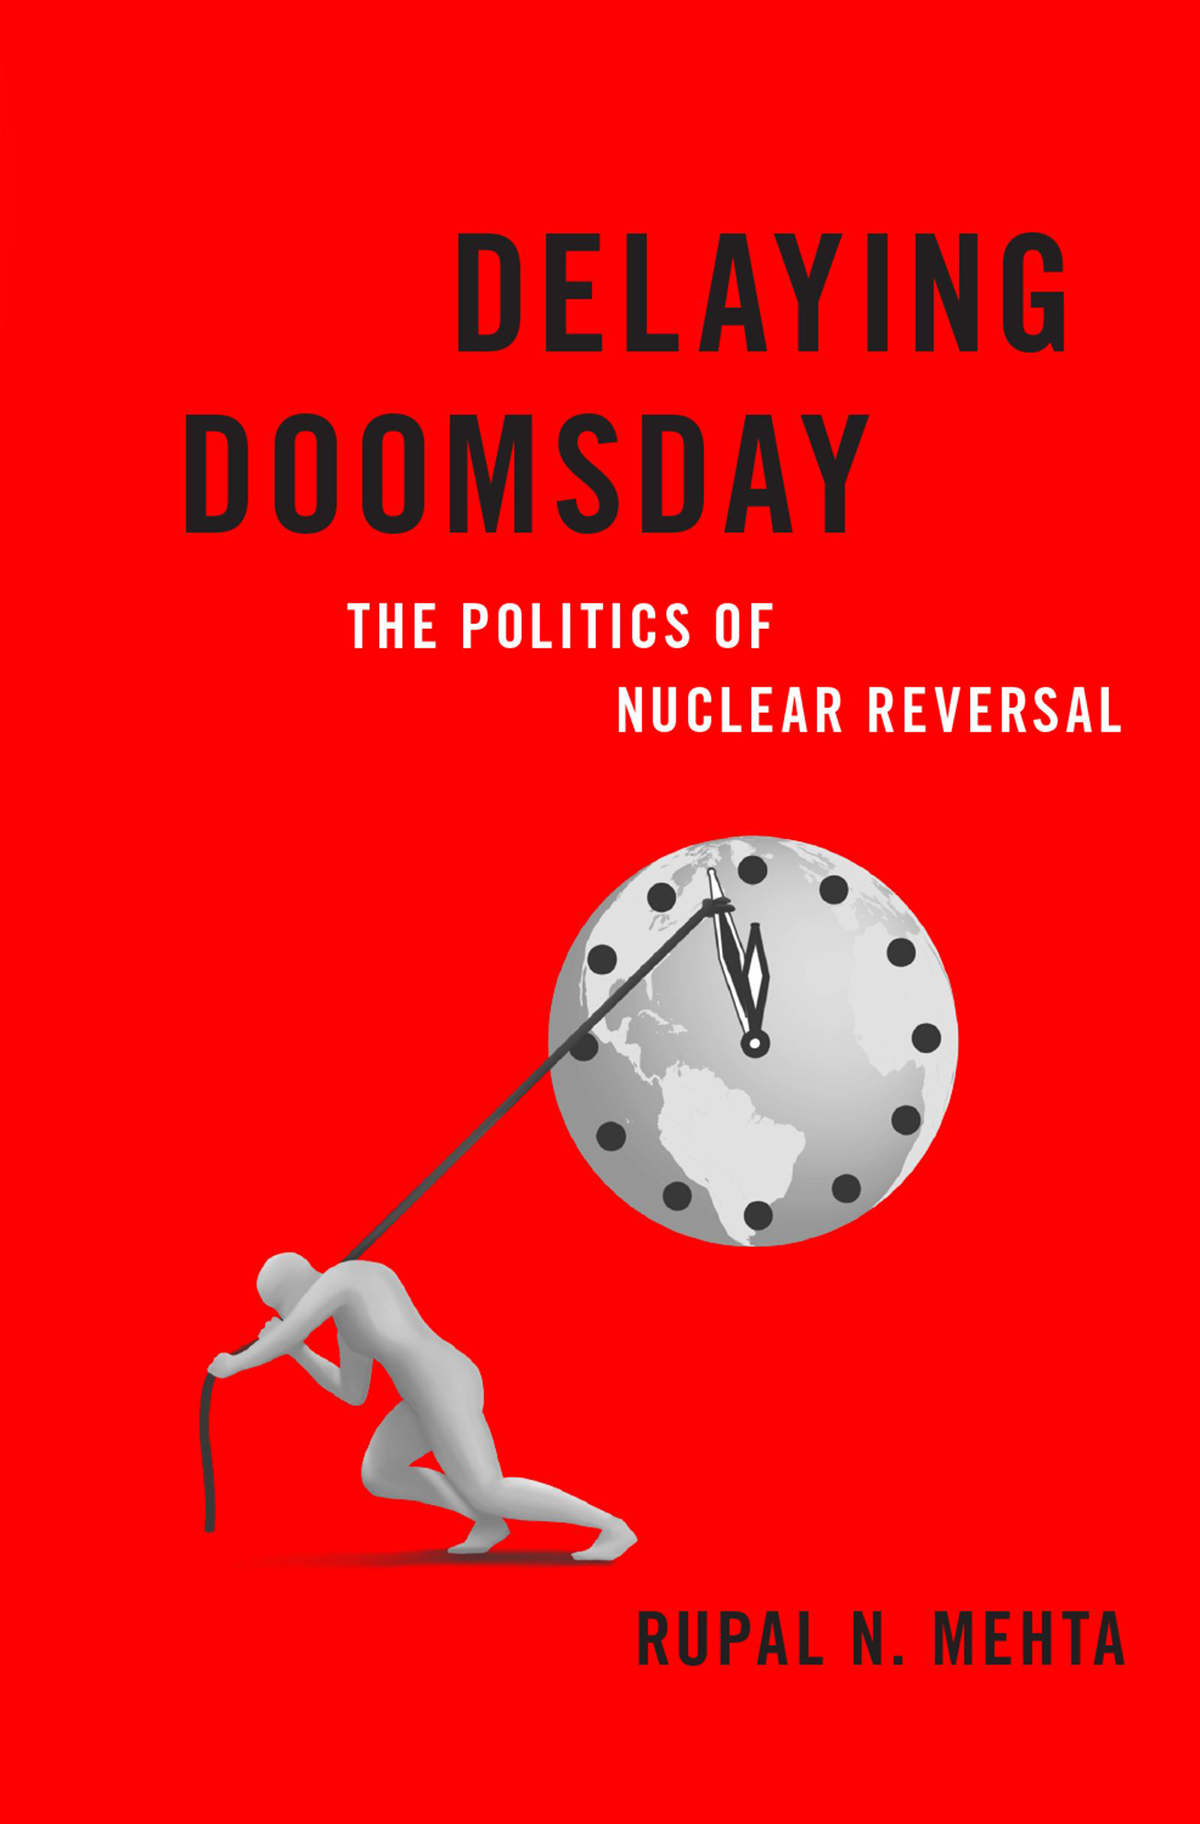 Politics of nuclear reversal